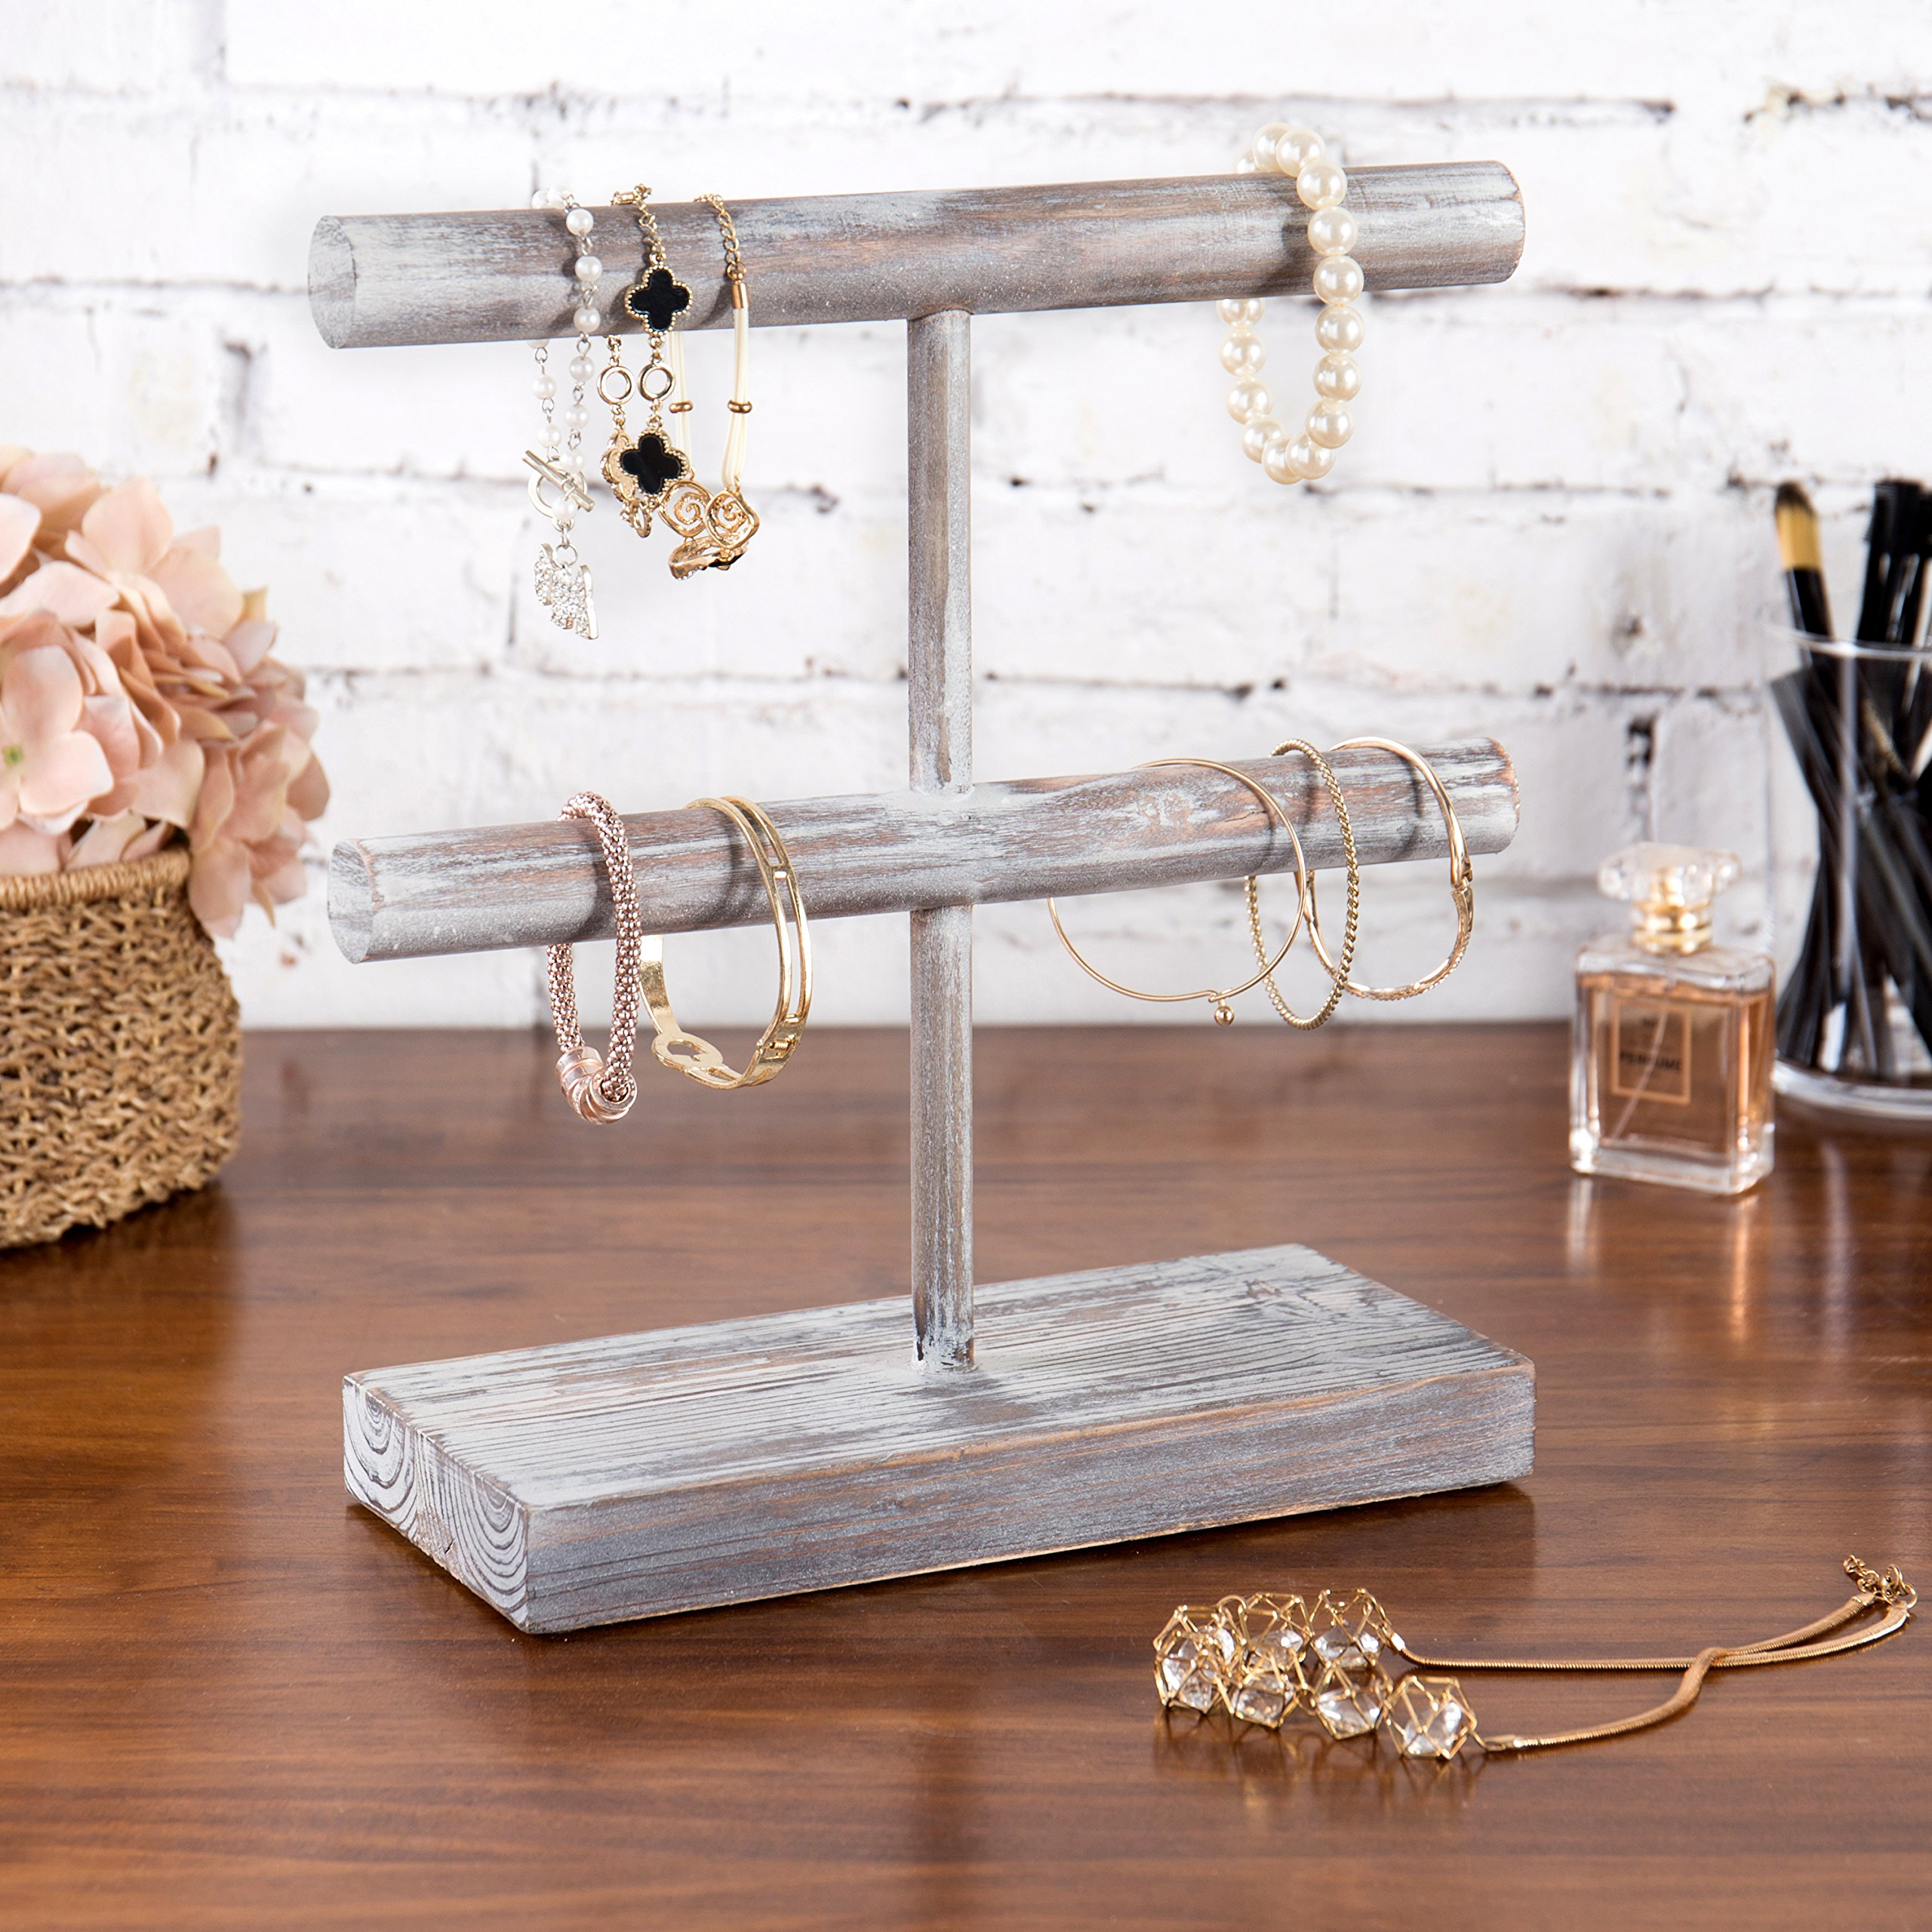 MyGift Rustic 2-Tier Torched Wood T-Bar Jewelry Display Rack, Bracelet & Watch Organizer by MyGift (Image #6)